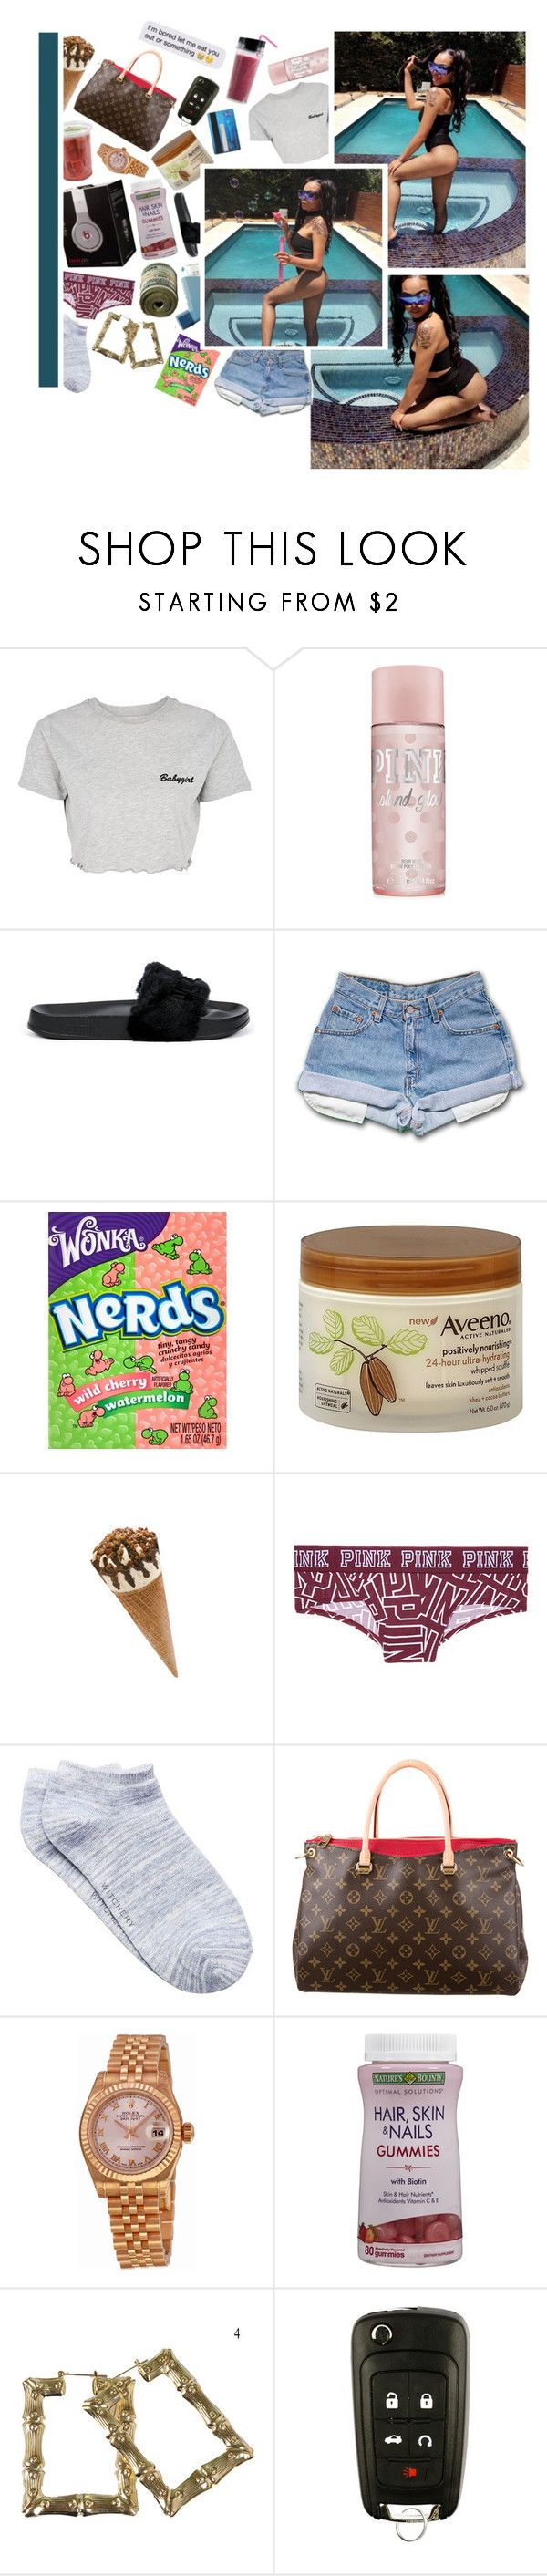 """""""baby mama text me at 5:18 , bad b'itch text me at 6:16 , bout seven am she was licking me , why she send these kissy face emojis to my phone , she digging hard on a n'igga cause im going strong"""" by krabbybaddies ❤ liked on Polyvore featuring Topshop, Puma, River Island, Aveeno, Beats by Dr. Dre, Witchery, Louis Vuitton and Rolex"""